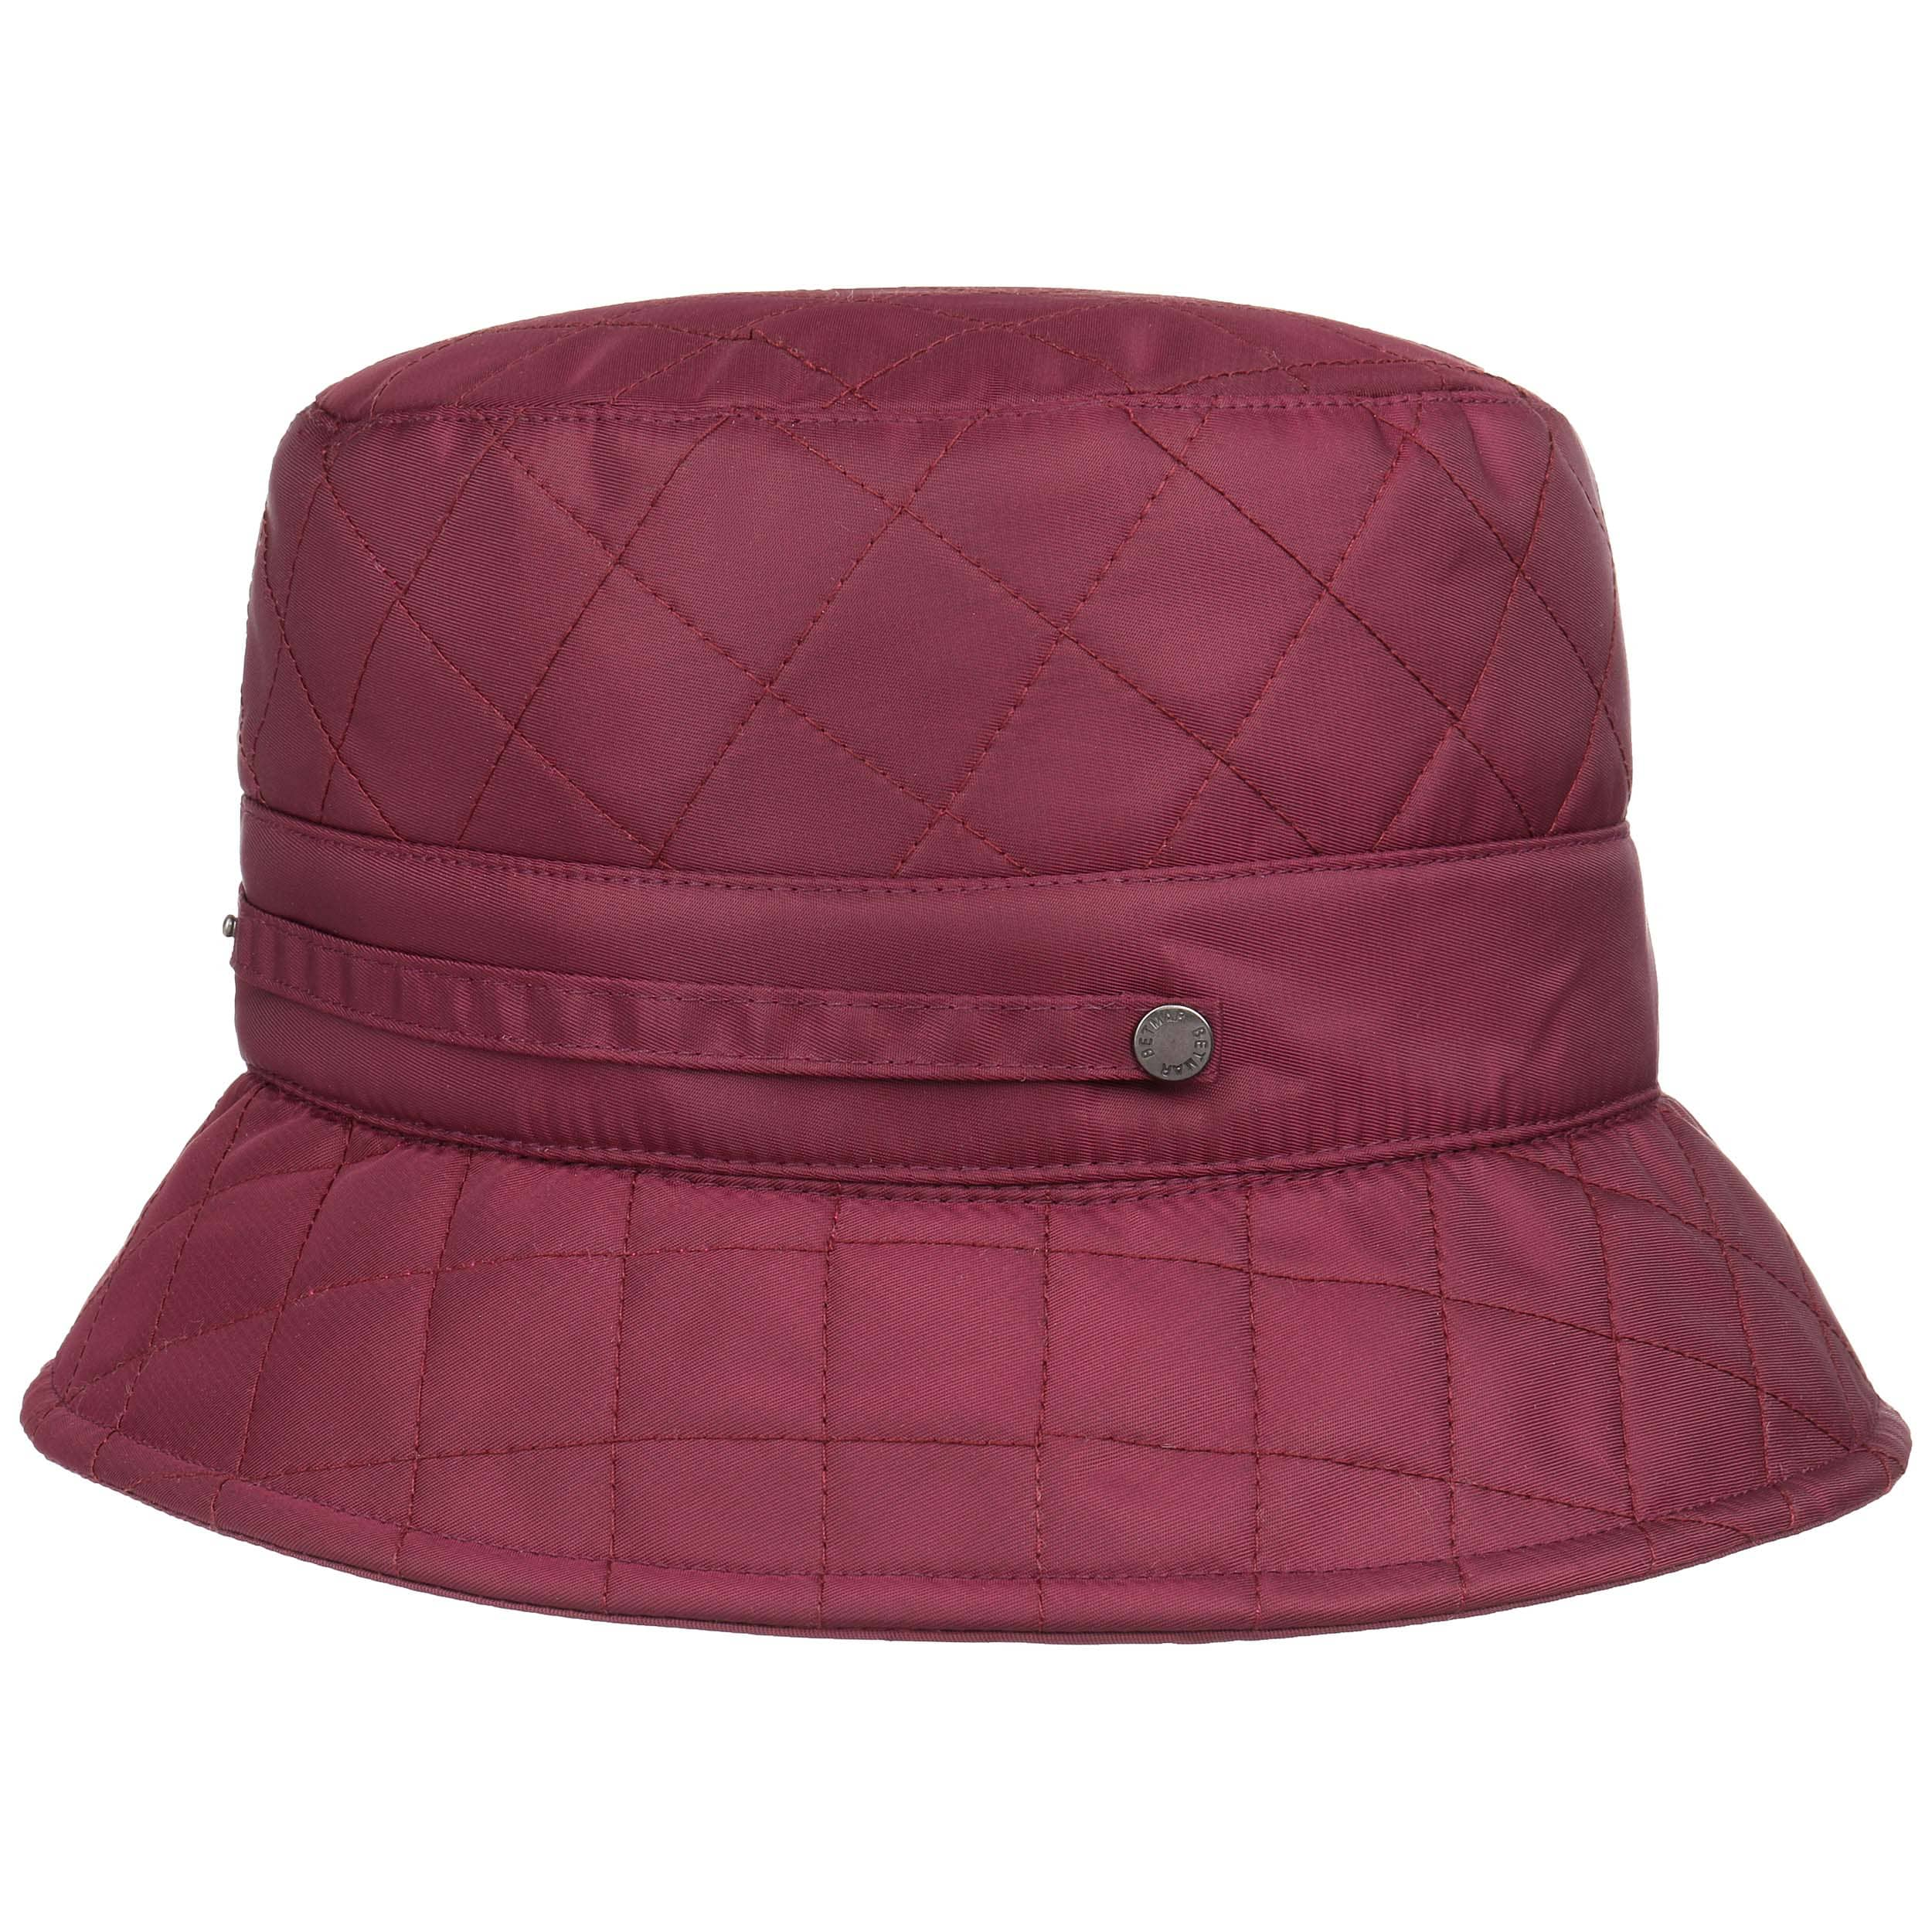 feeb97f02804b ... Quilted Bucket Hat by Betmar - black 5